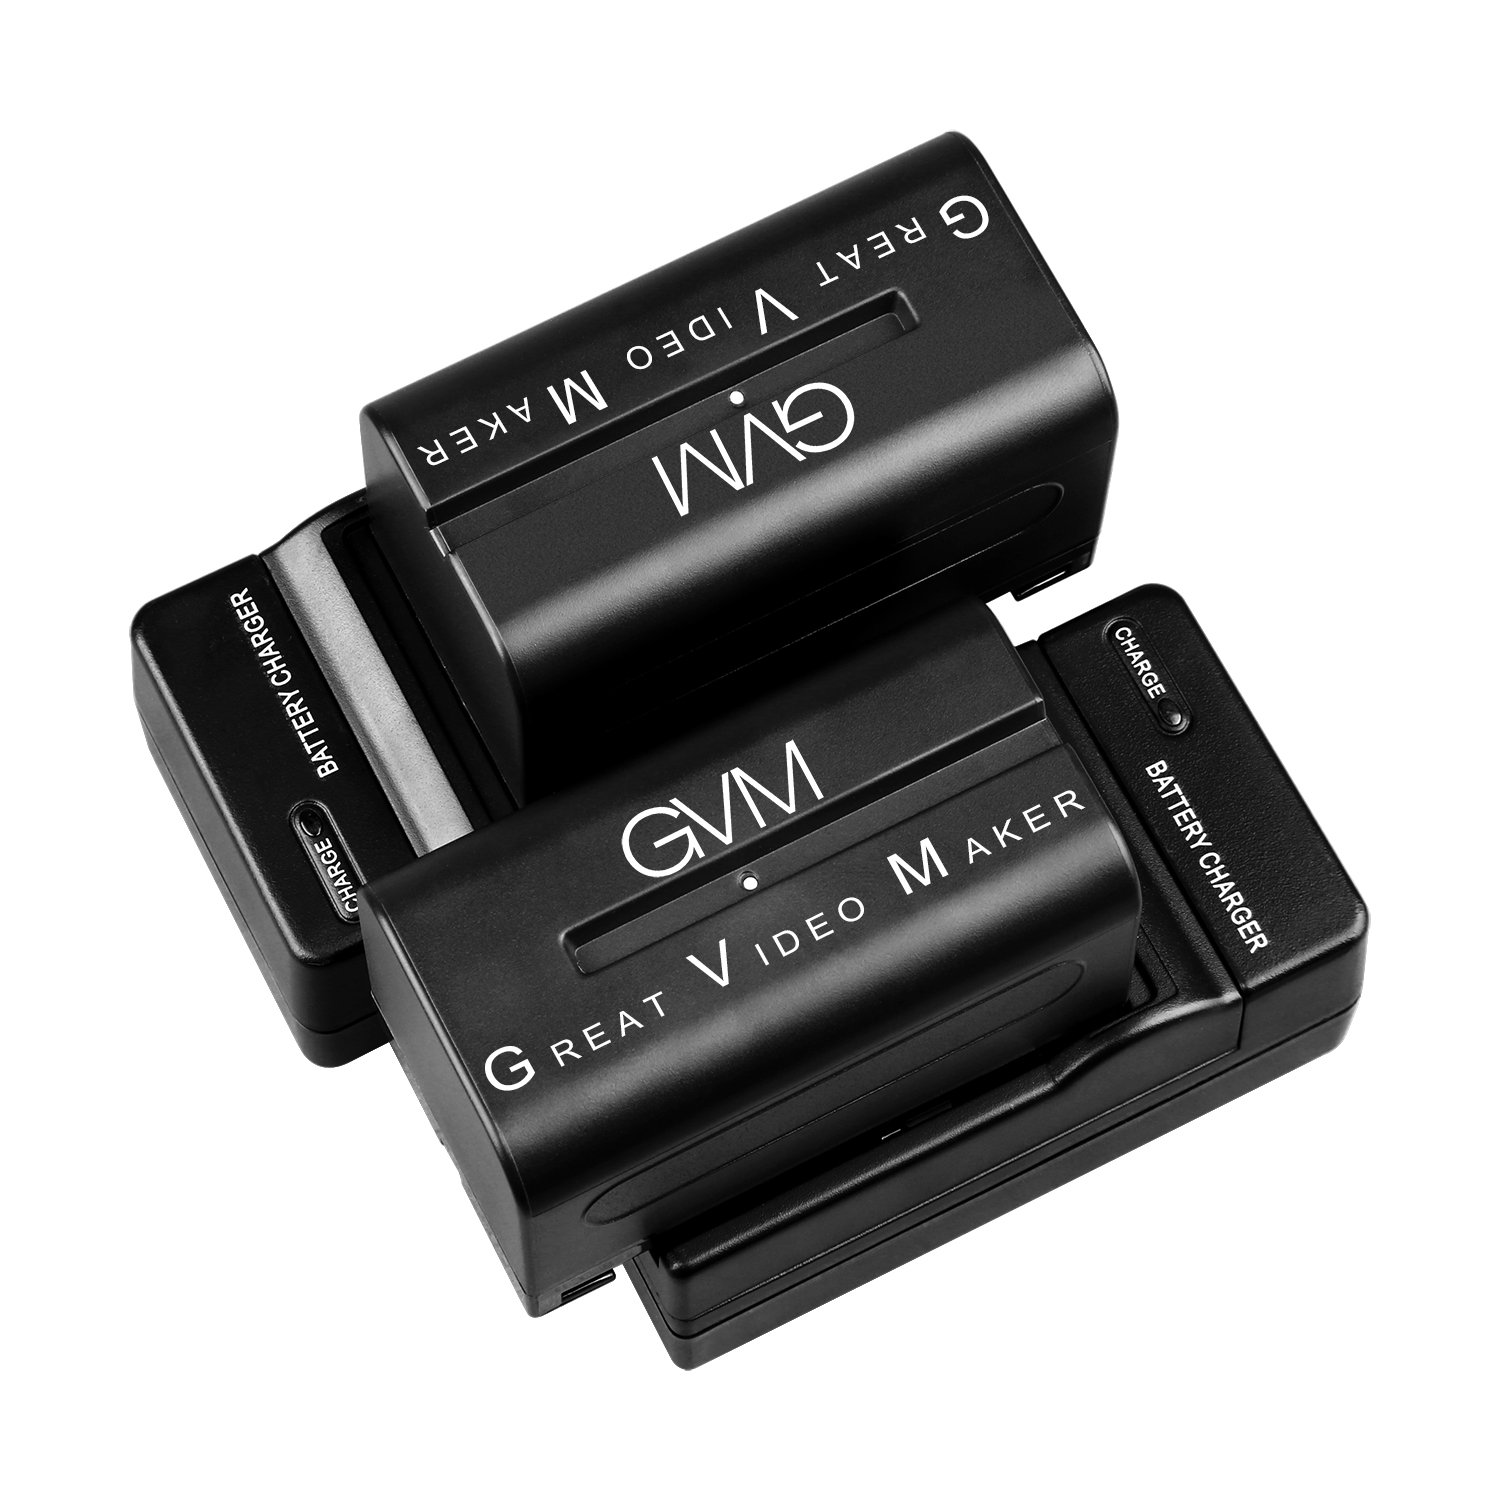 GVM 2 Pack NP-F750/770 Battery and Charger 4400mAh for Sony NP-F975, NP-F960, NP-F950, NP-F930, NP-F770, NP-F750, NP-F550, DCR, DSR, HDR, FDR, HVR, HVL and LED Light by GVM Great Video Maker